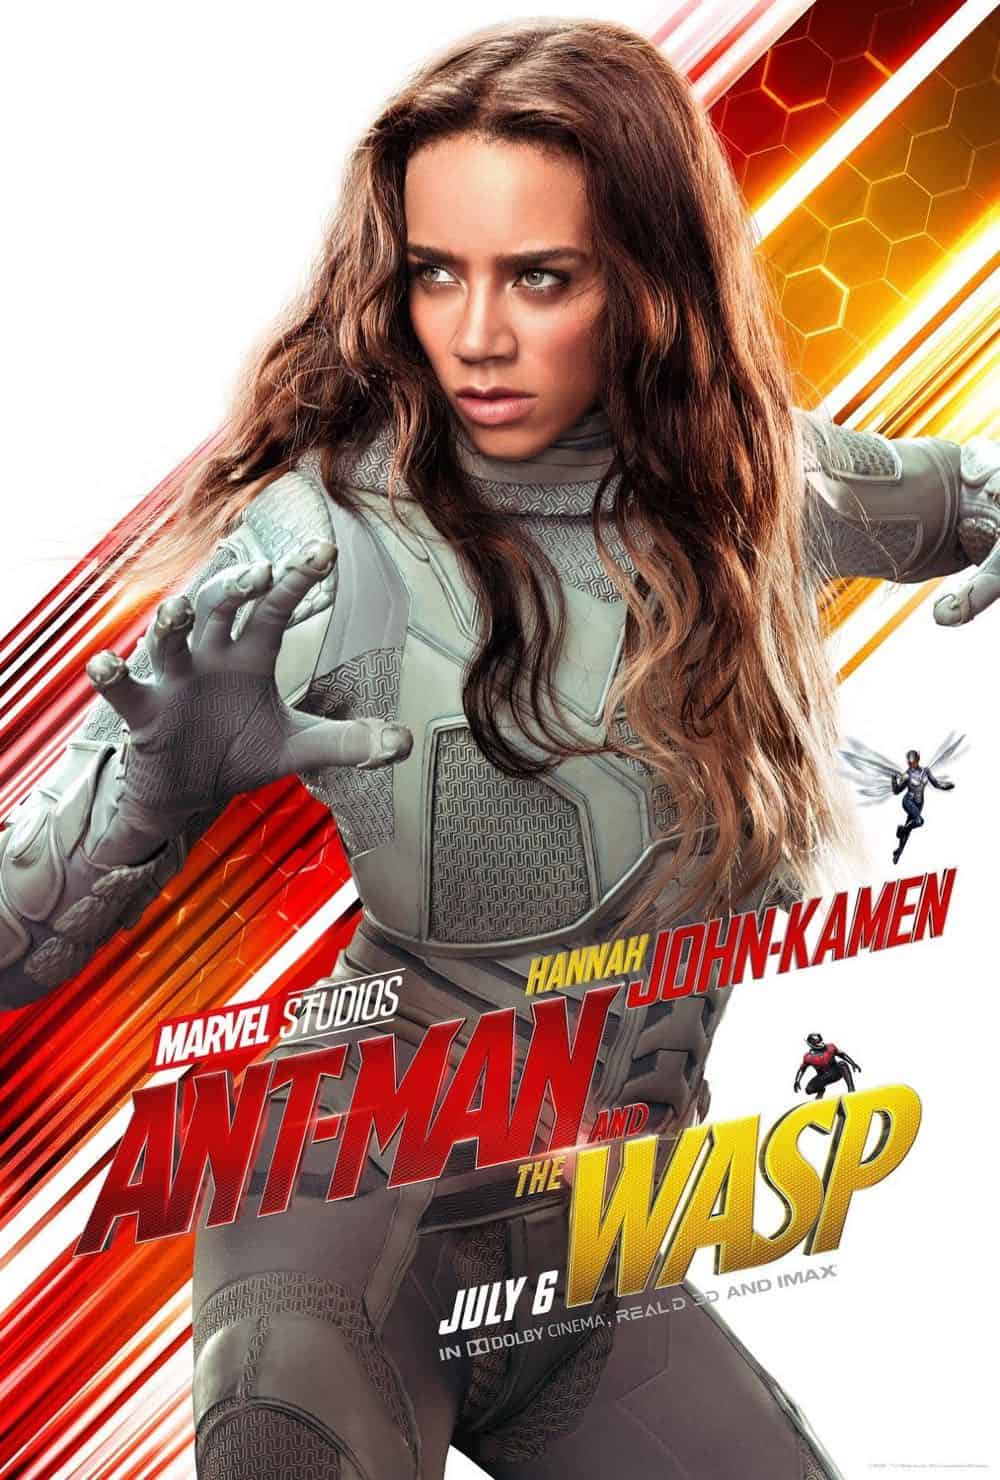 Ant-Man-And-The-Wasp-Movie-Character-Poster-Hannah-John-Kamen